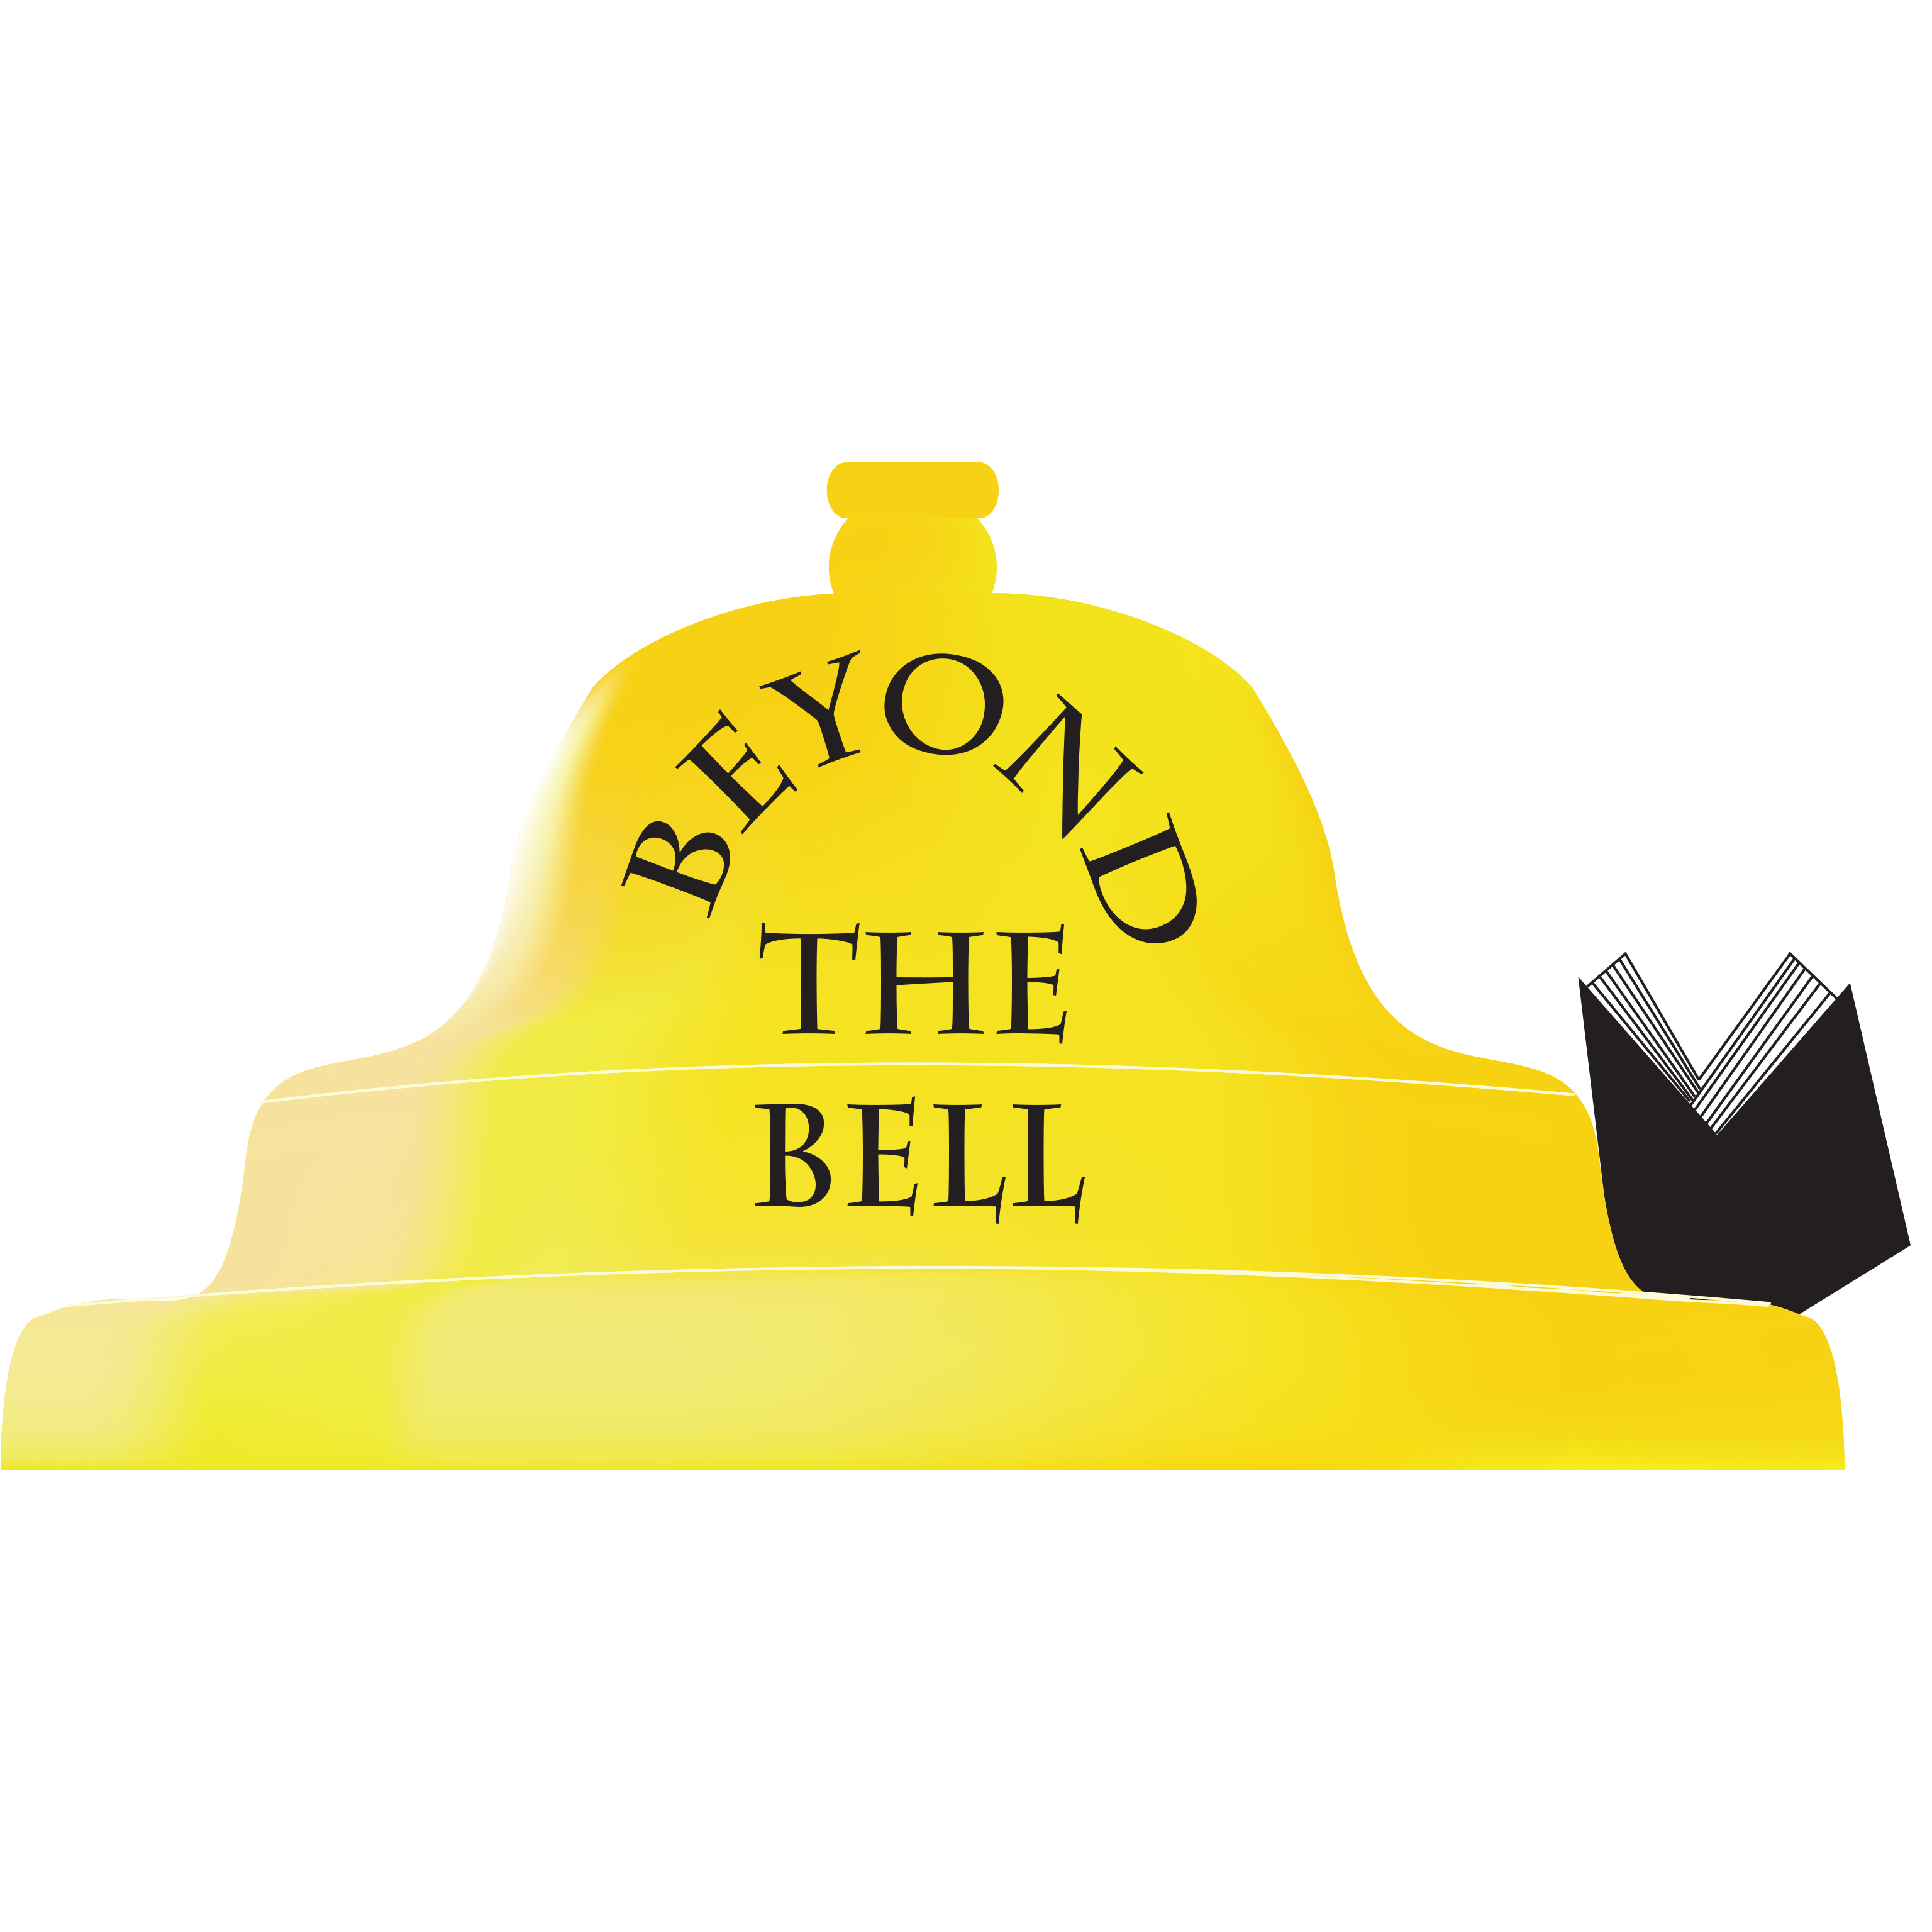 Beyond The Bell - Substance Abuse Prevention